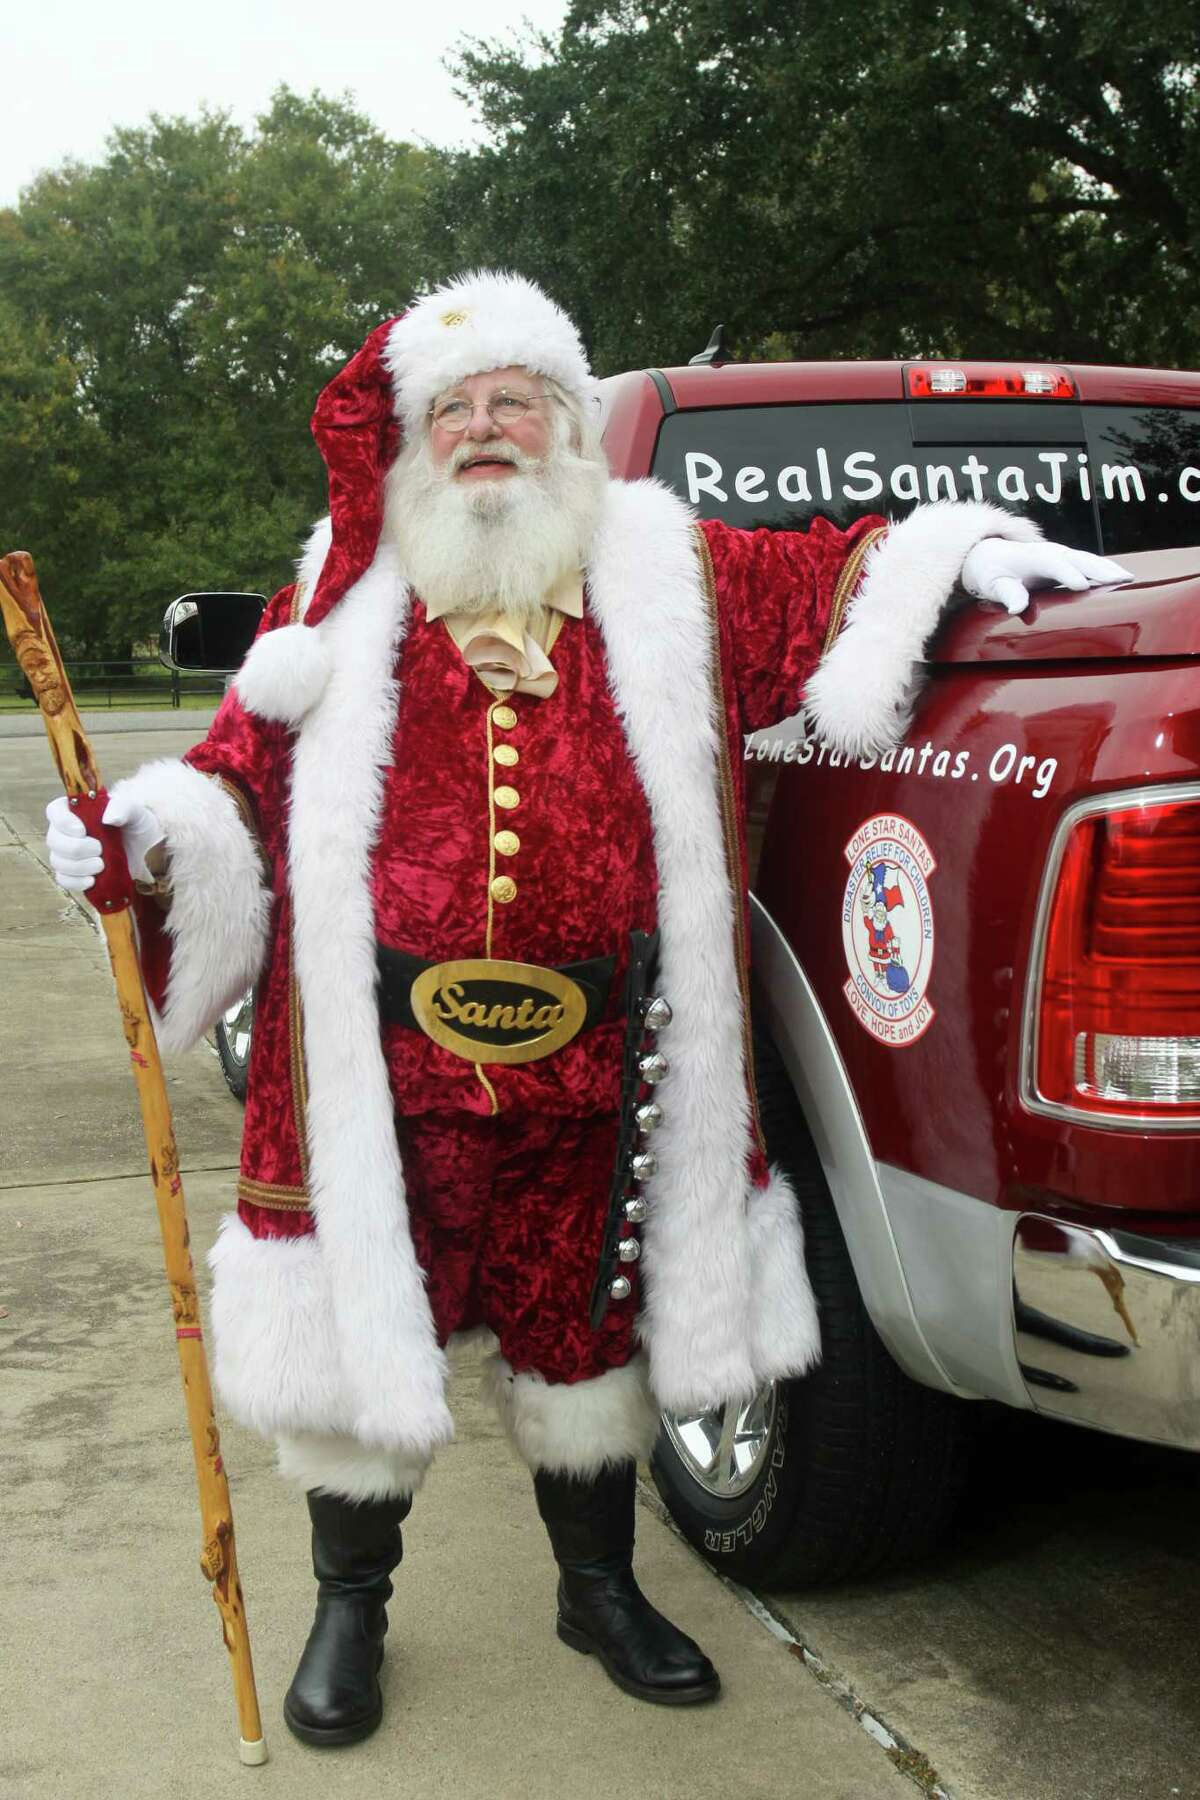 (For the Chronicle/Gary Fountain, December 20 2013) Santa Jim Fletcher dressed for work, and with his pickup, which he calls his sleigh. Jim isn't just Santa Claus in the weeks before Christmas. His white beard is year round, and during the year he attends Claus classes and conventions.